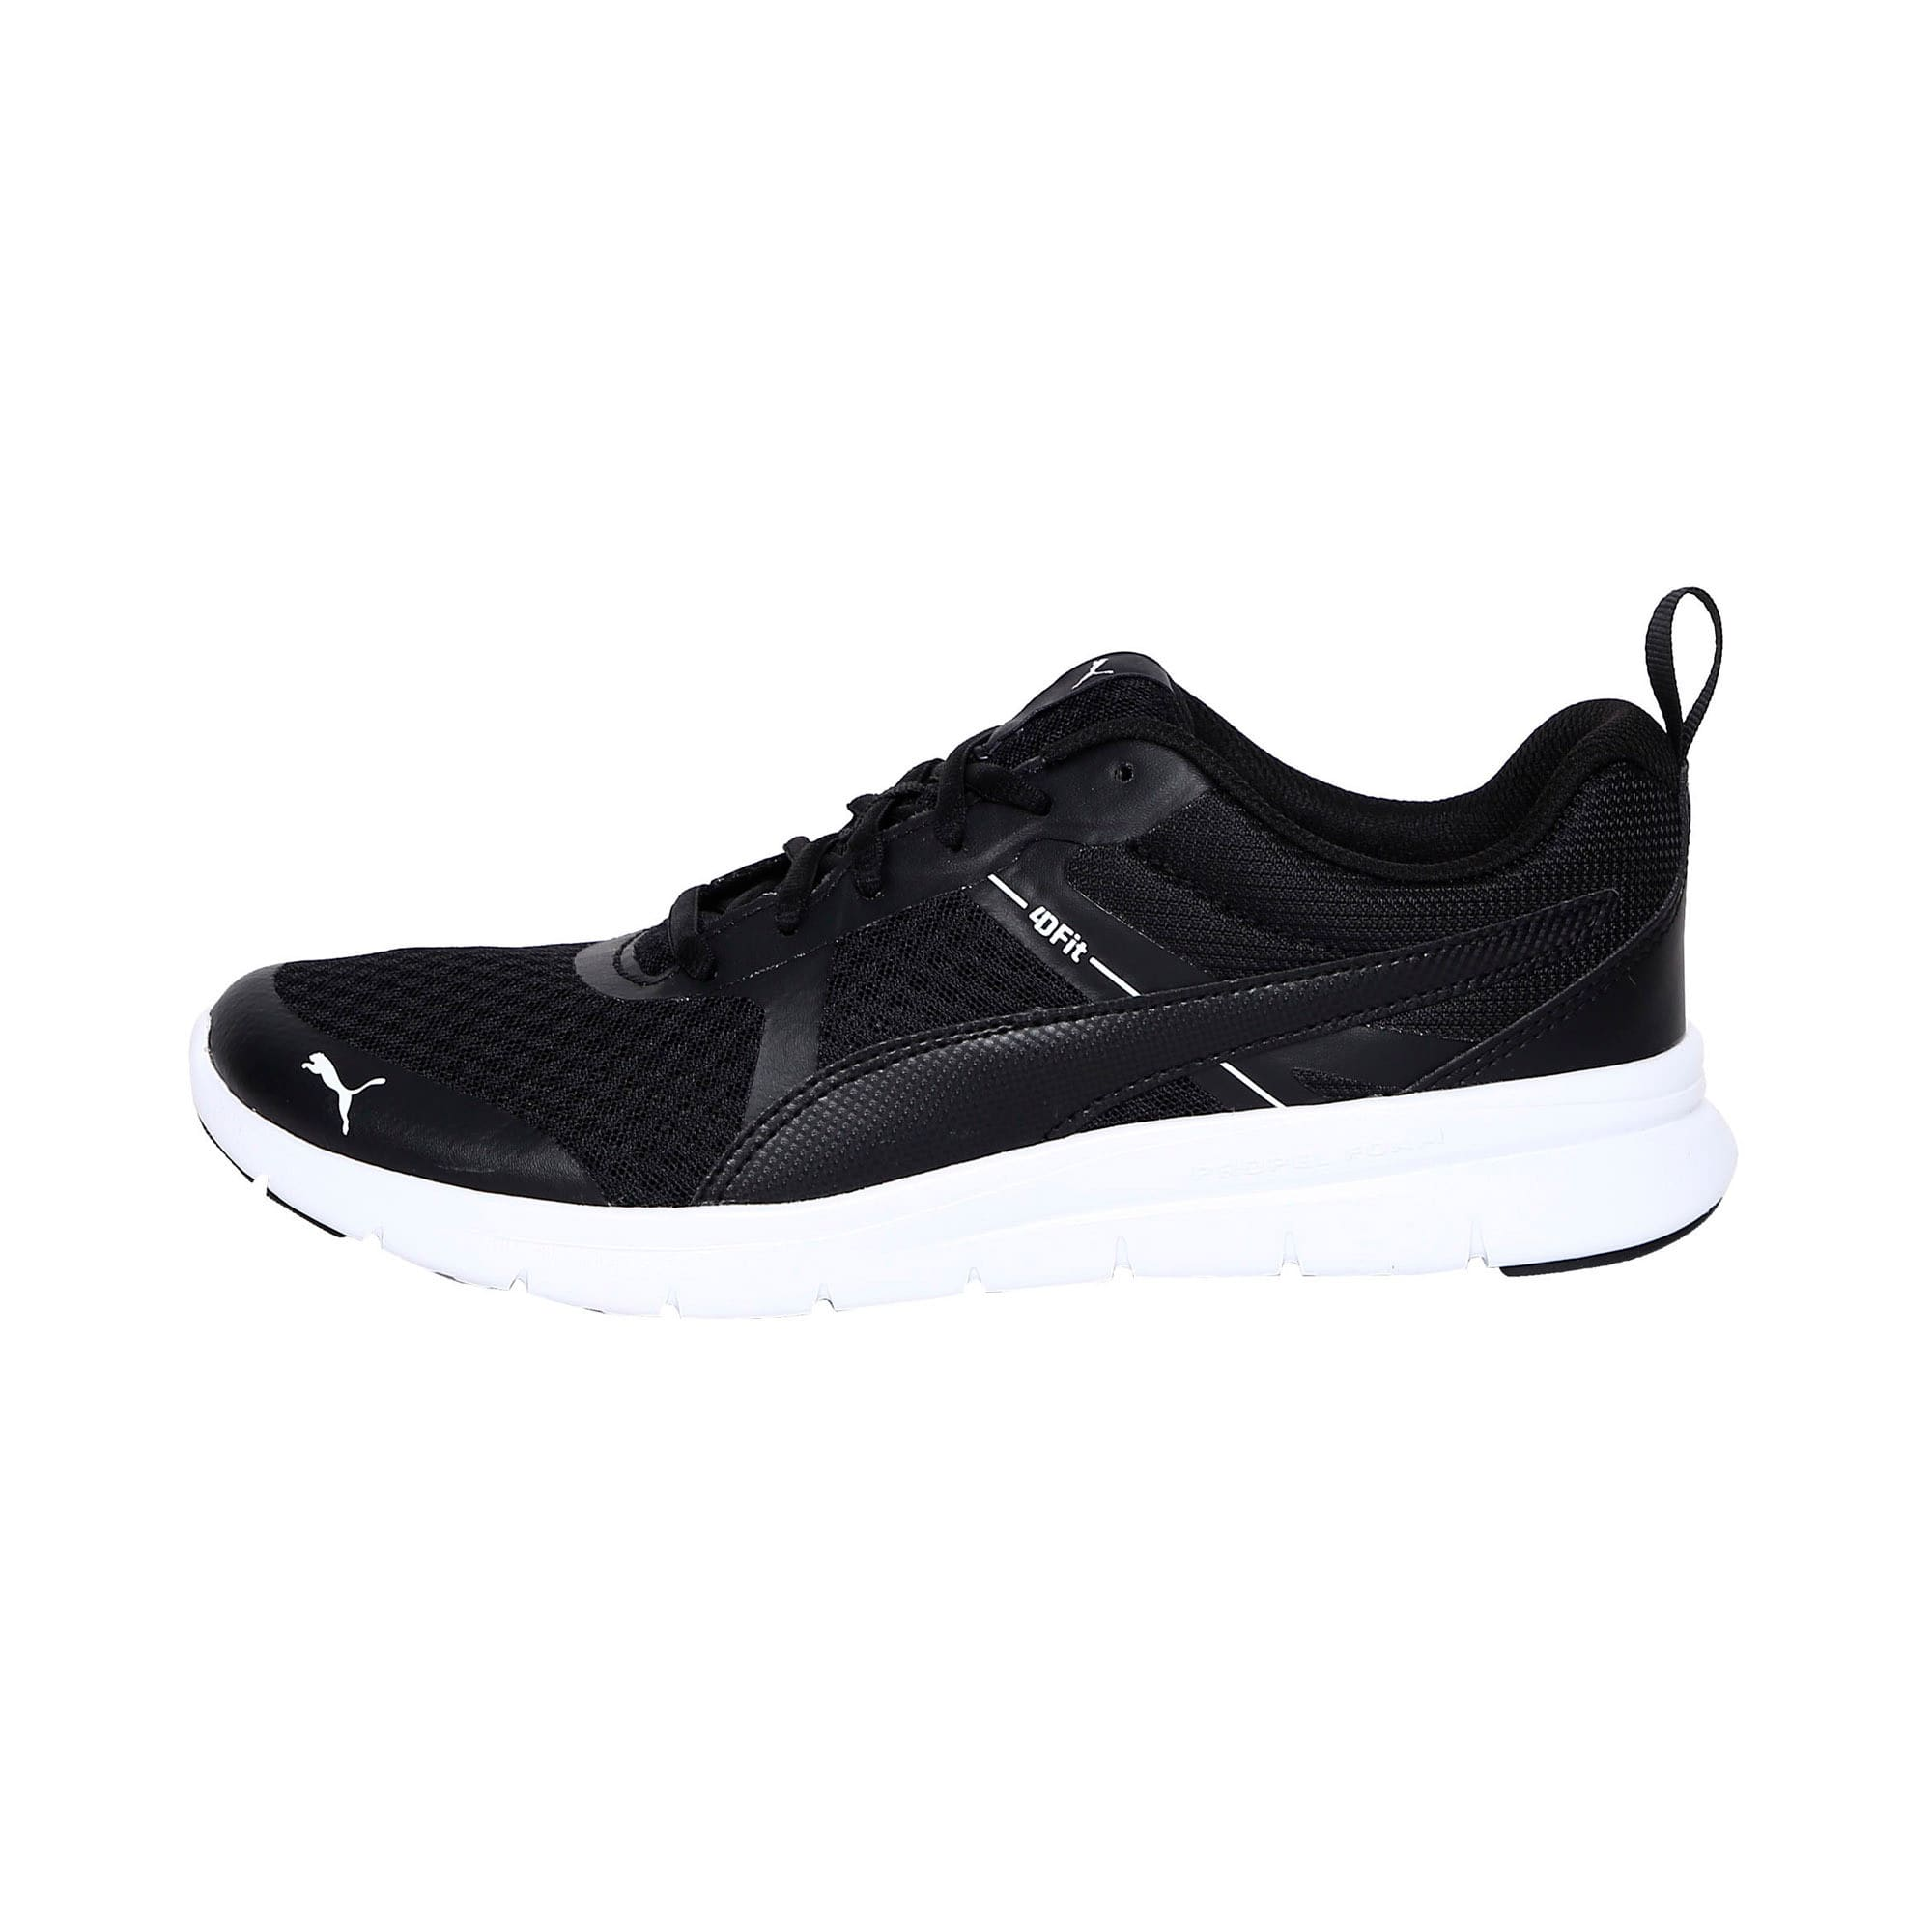 Thumbnail 1 of Flex Essential Trainers, Puma Black-Puma Black, medium-IND